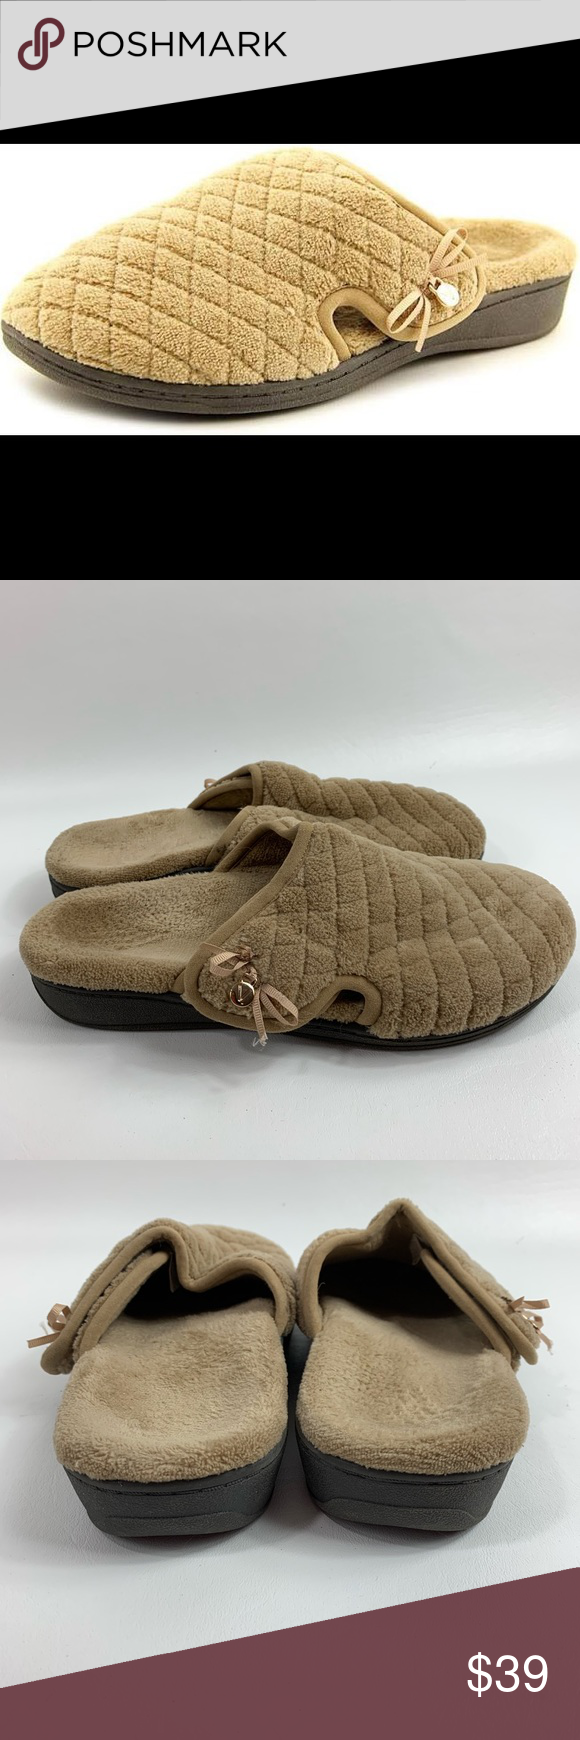 0f0aae96d12eb Vionic Adilyn Women Round Toe Canvas Slipper 8 Vionic slippers women's size  8 tan beige slip on very comfortable like new condition #505 Vionic Shoes  ...